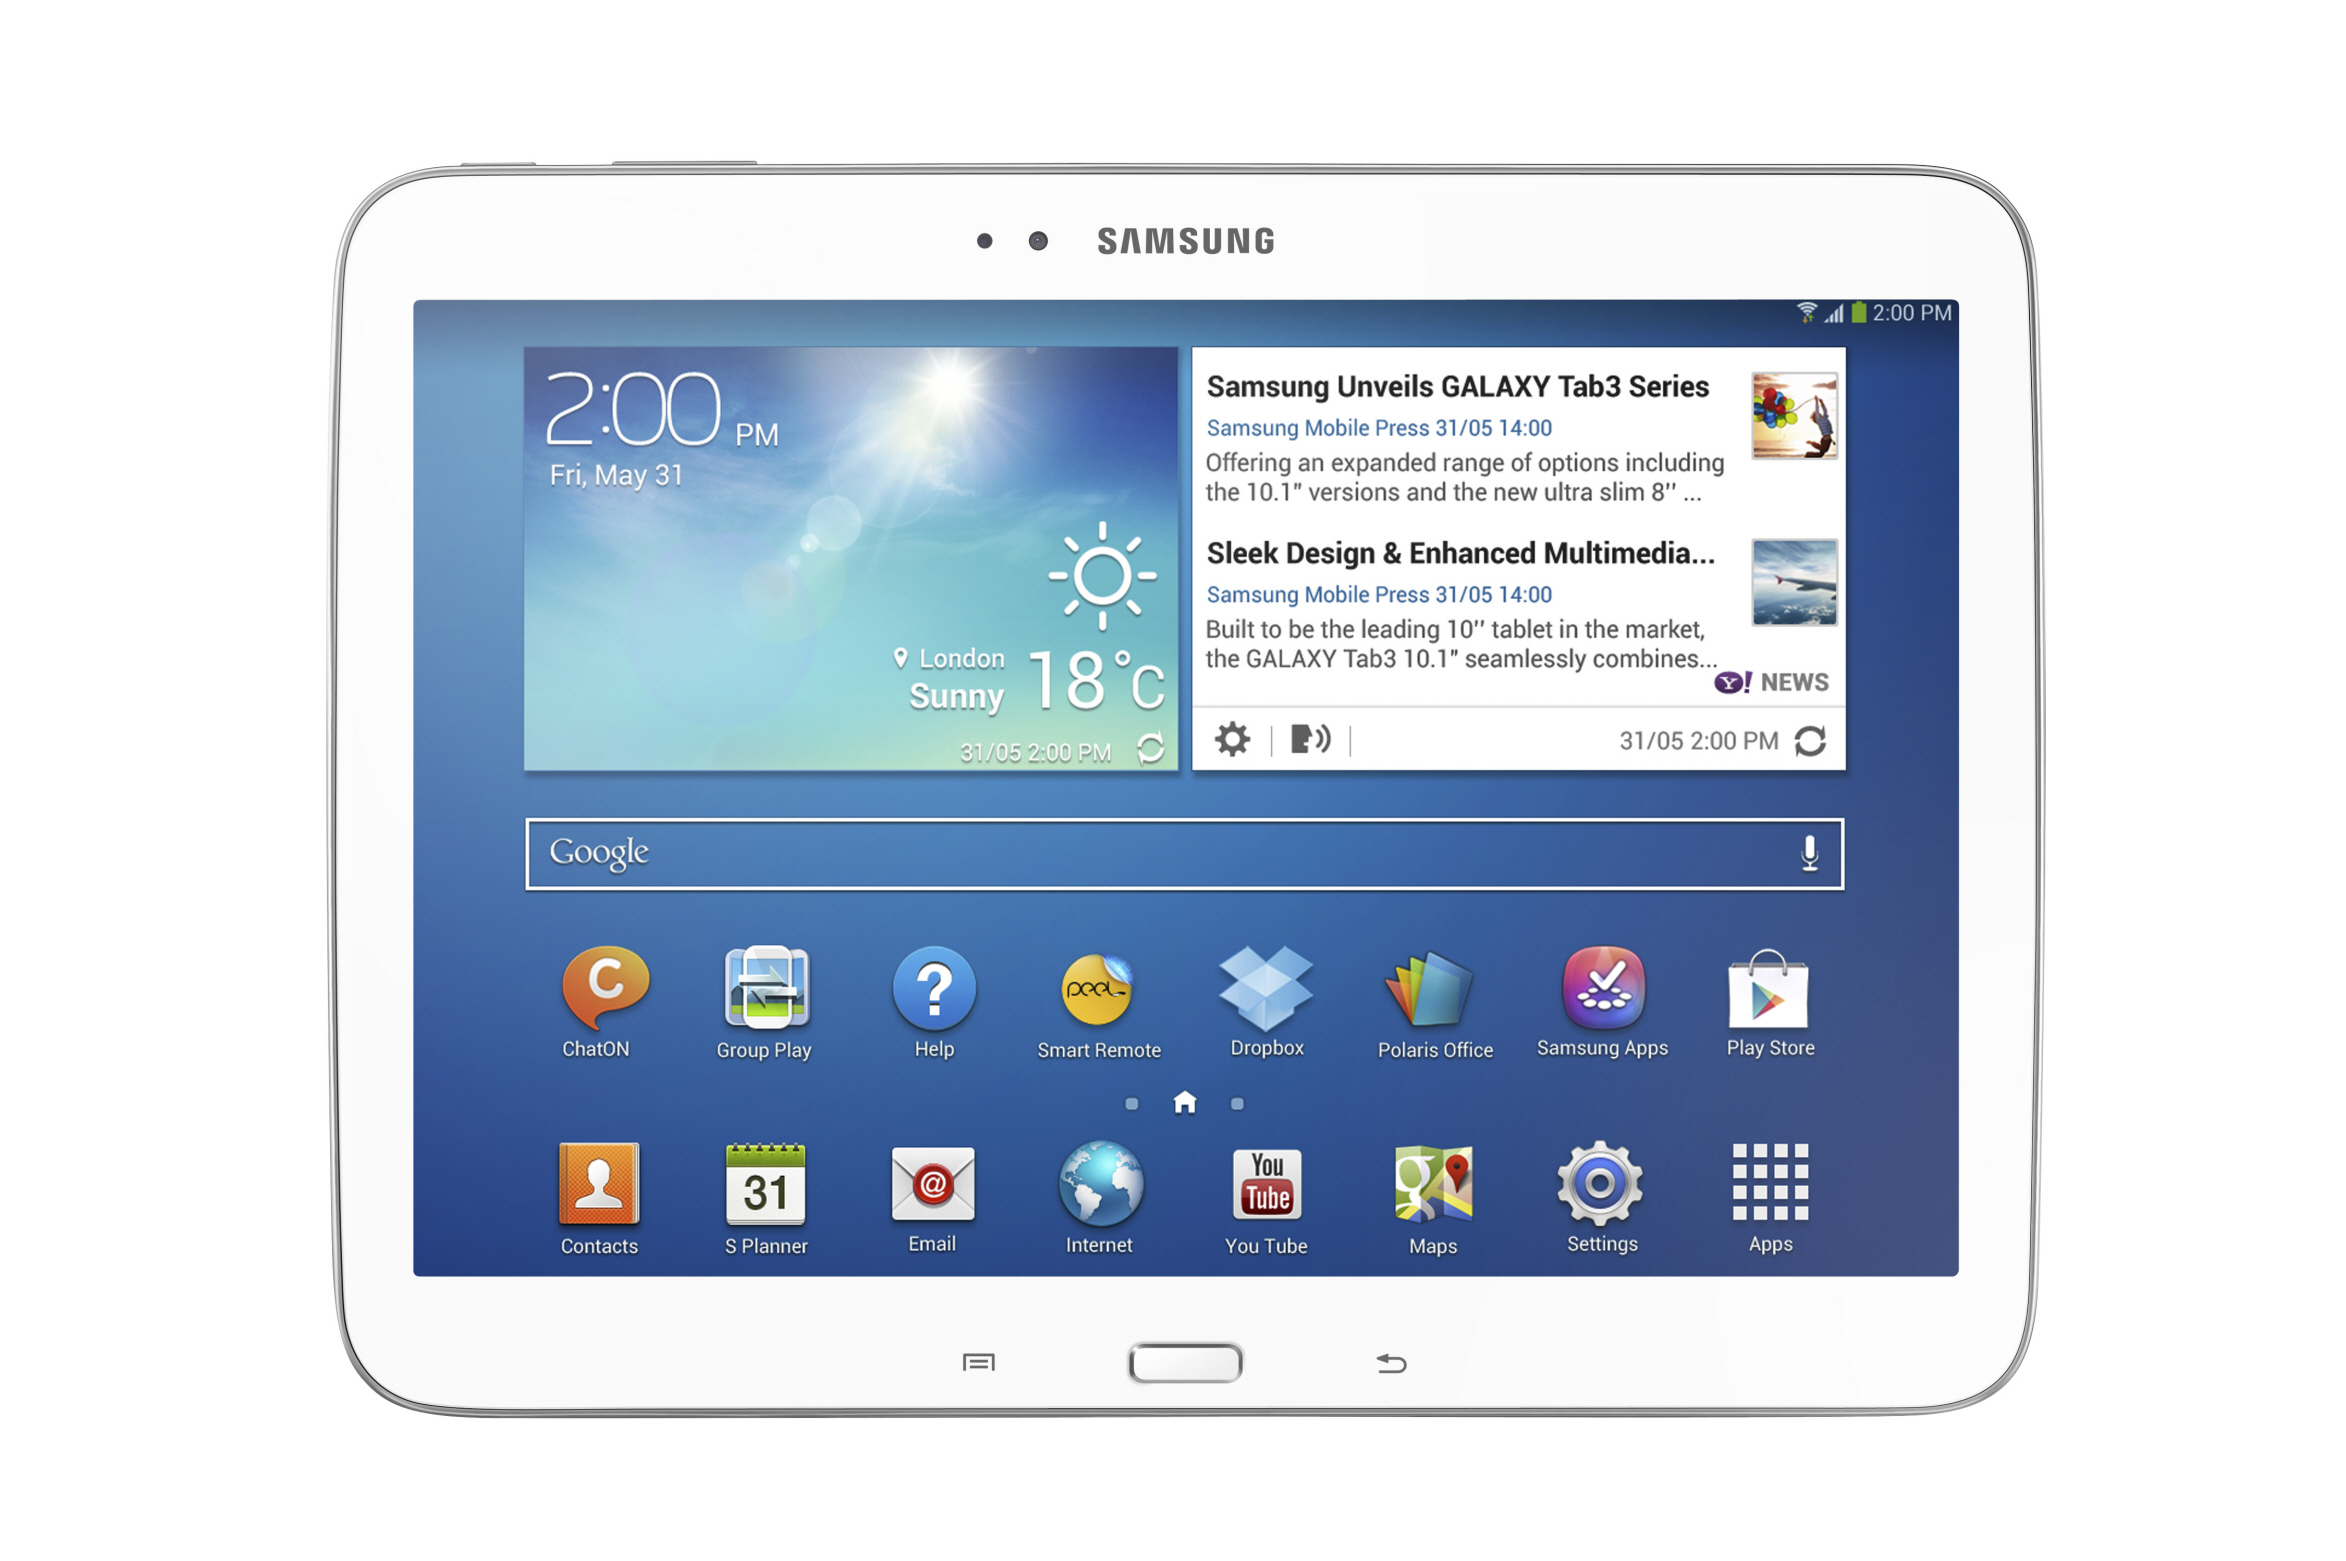 samsung unveils 8 and 10 1 galaxy tab 3 android tablets